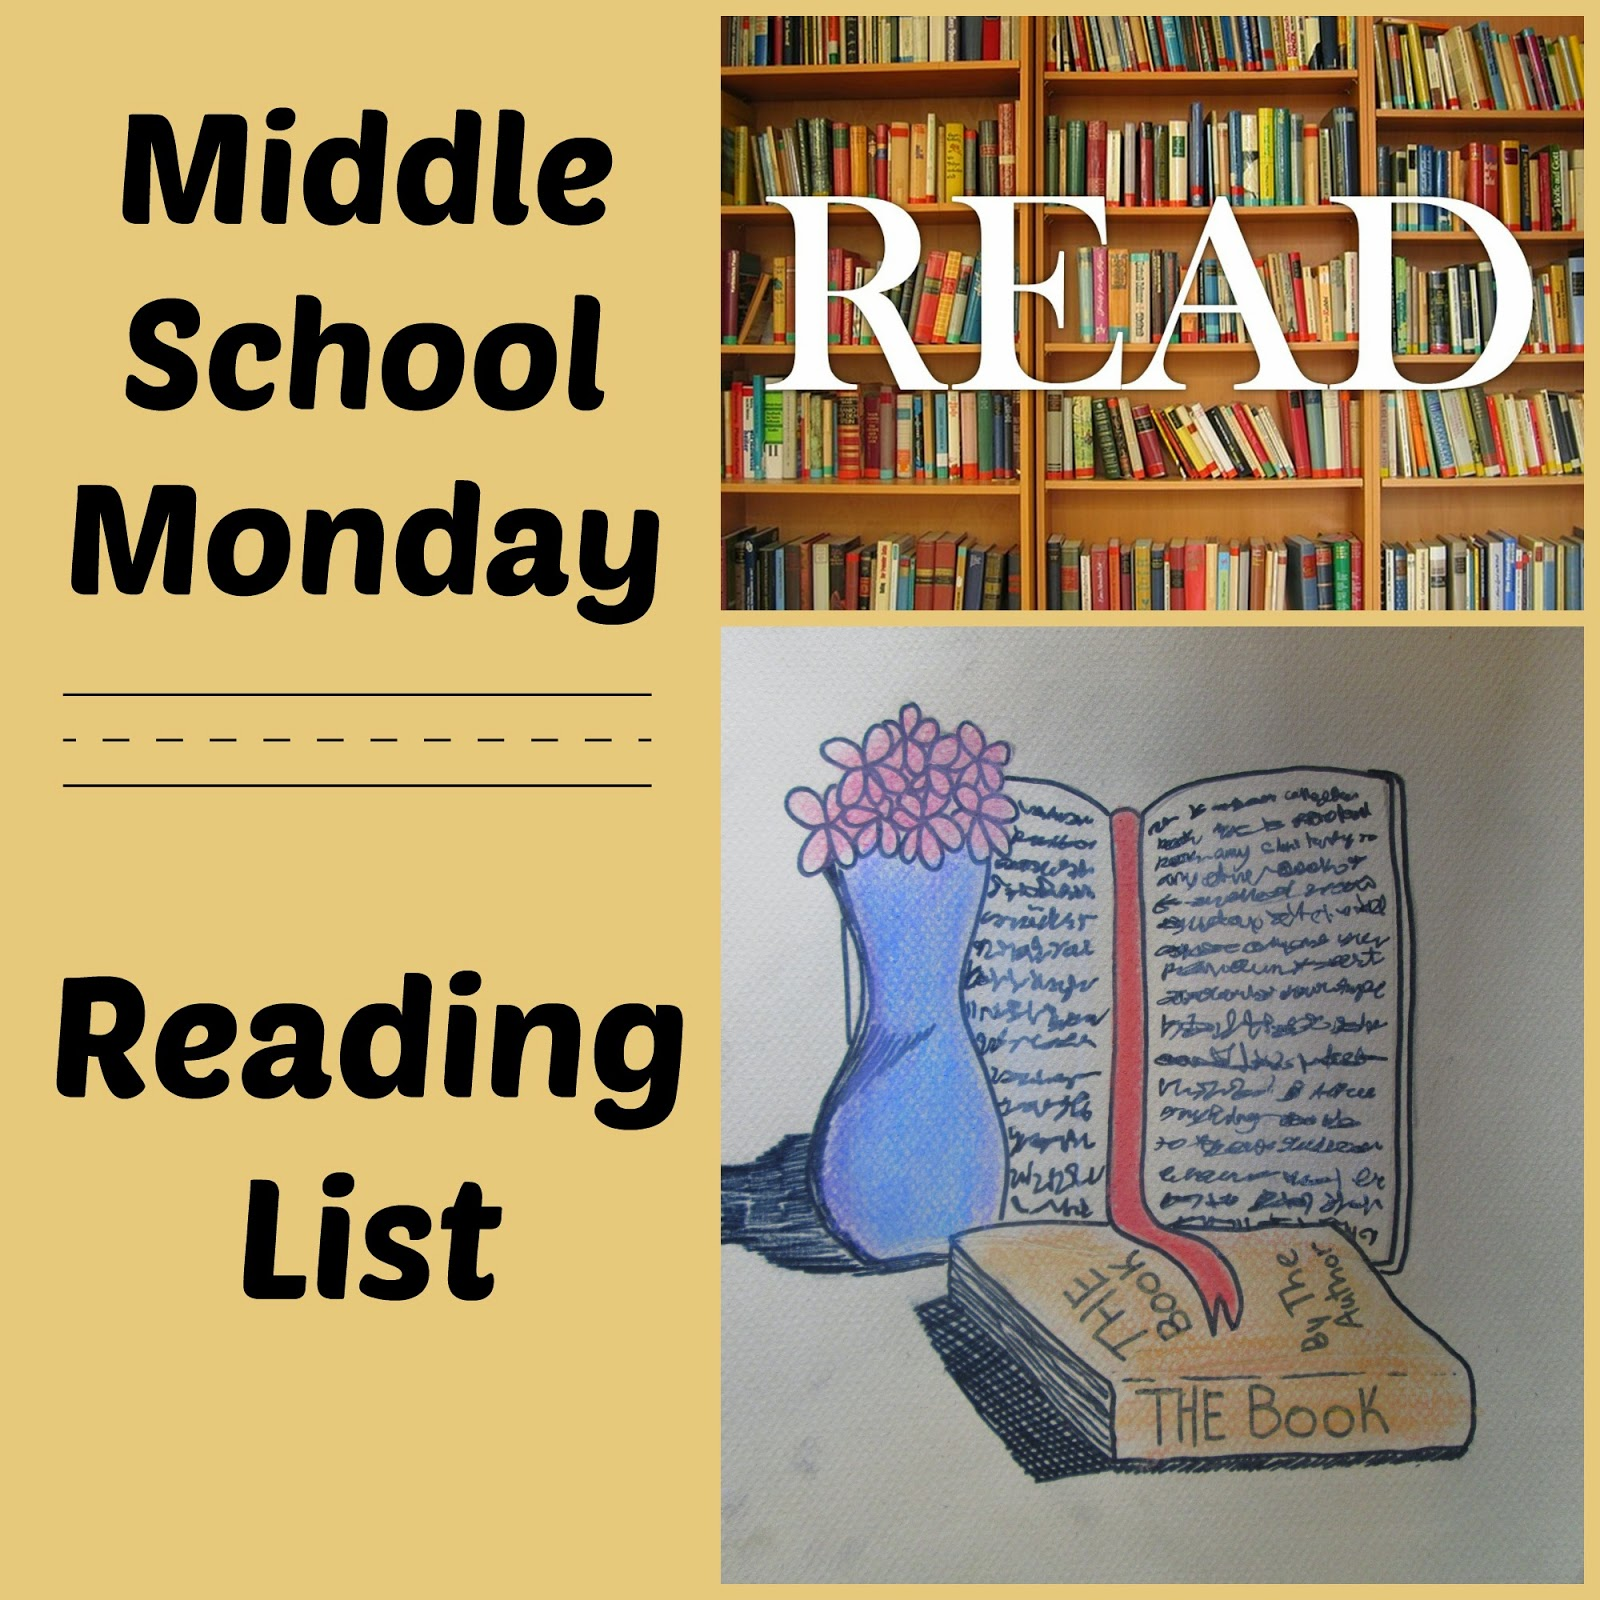 Middle School Monday Reading List @ kympossibleblog.blogspot.com